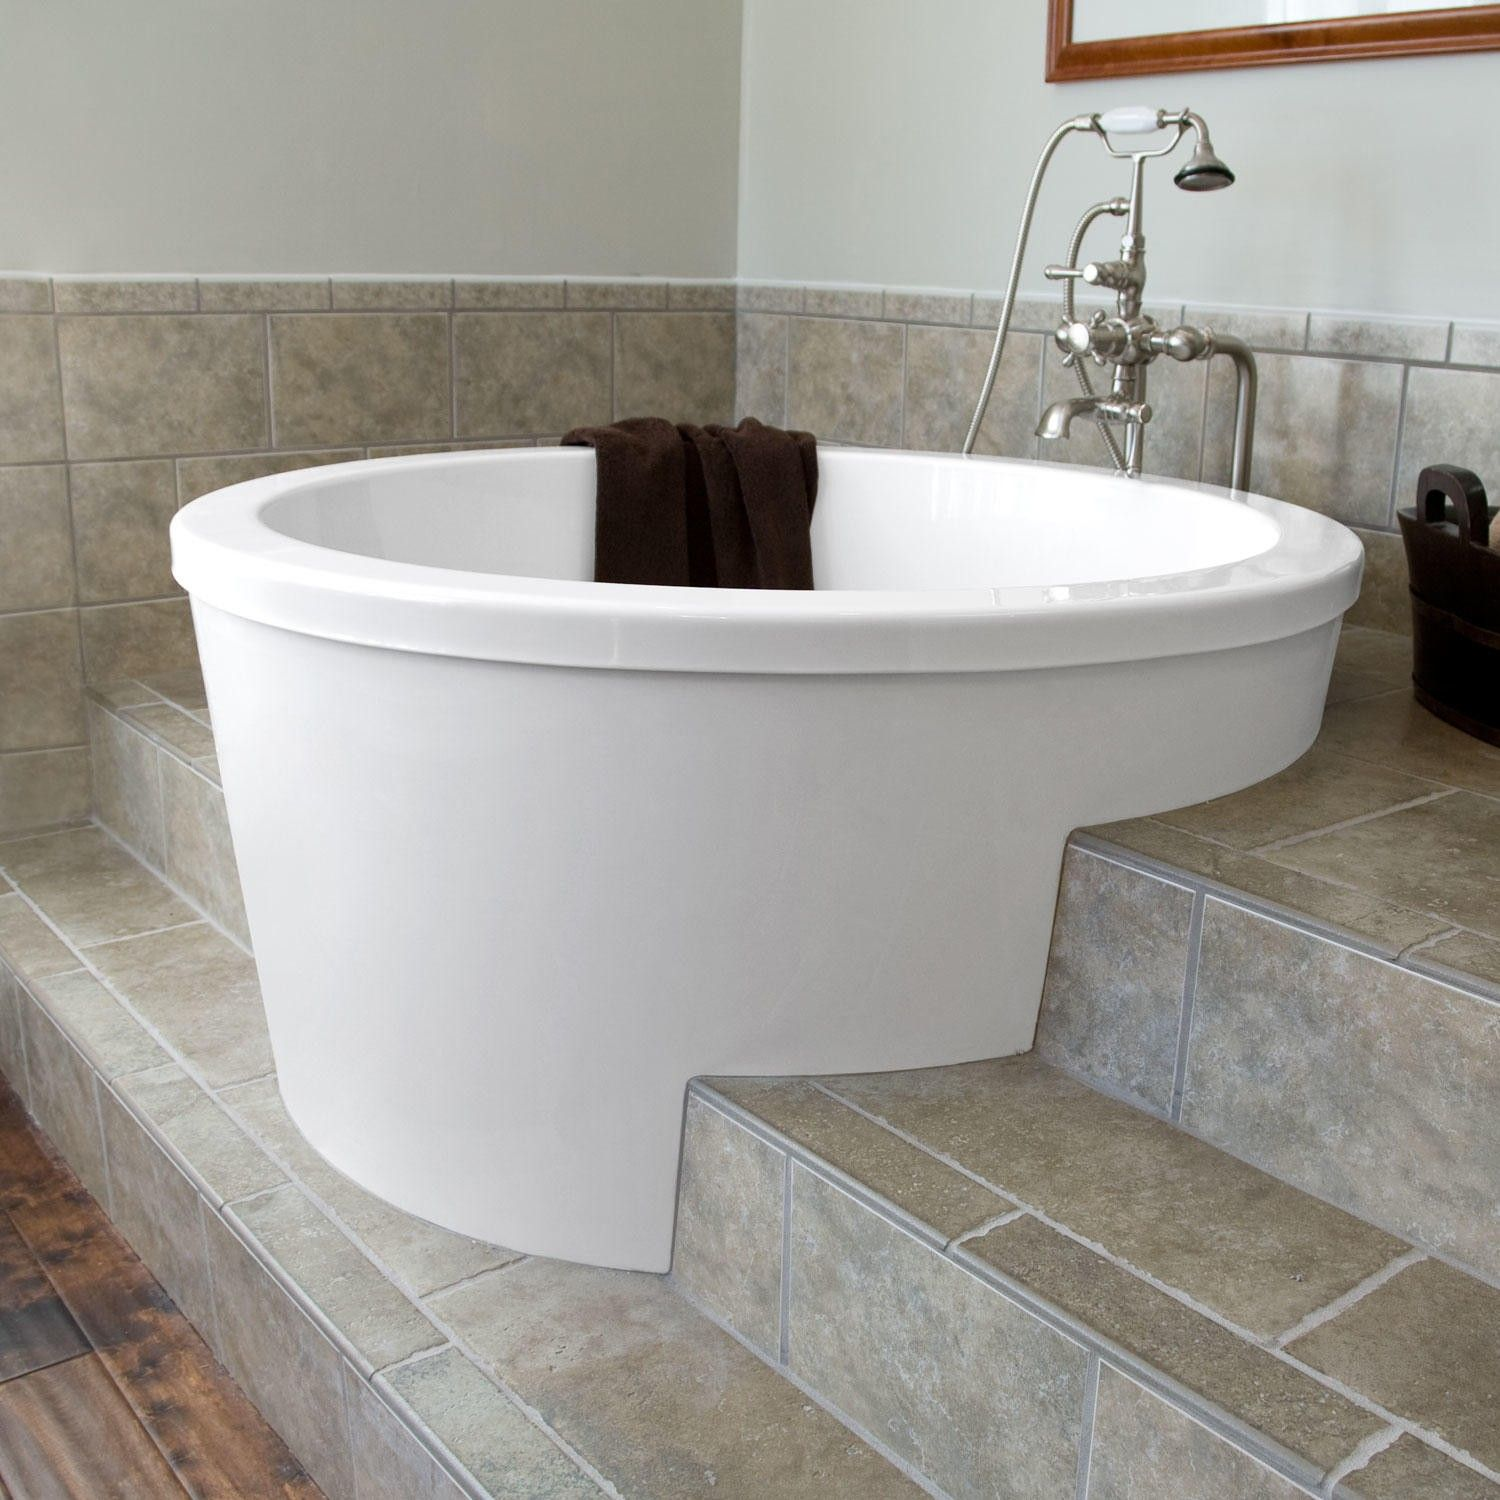 47 Caruso Acrylic Japanese Soaking Tub Japanese soaking tubs